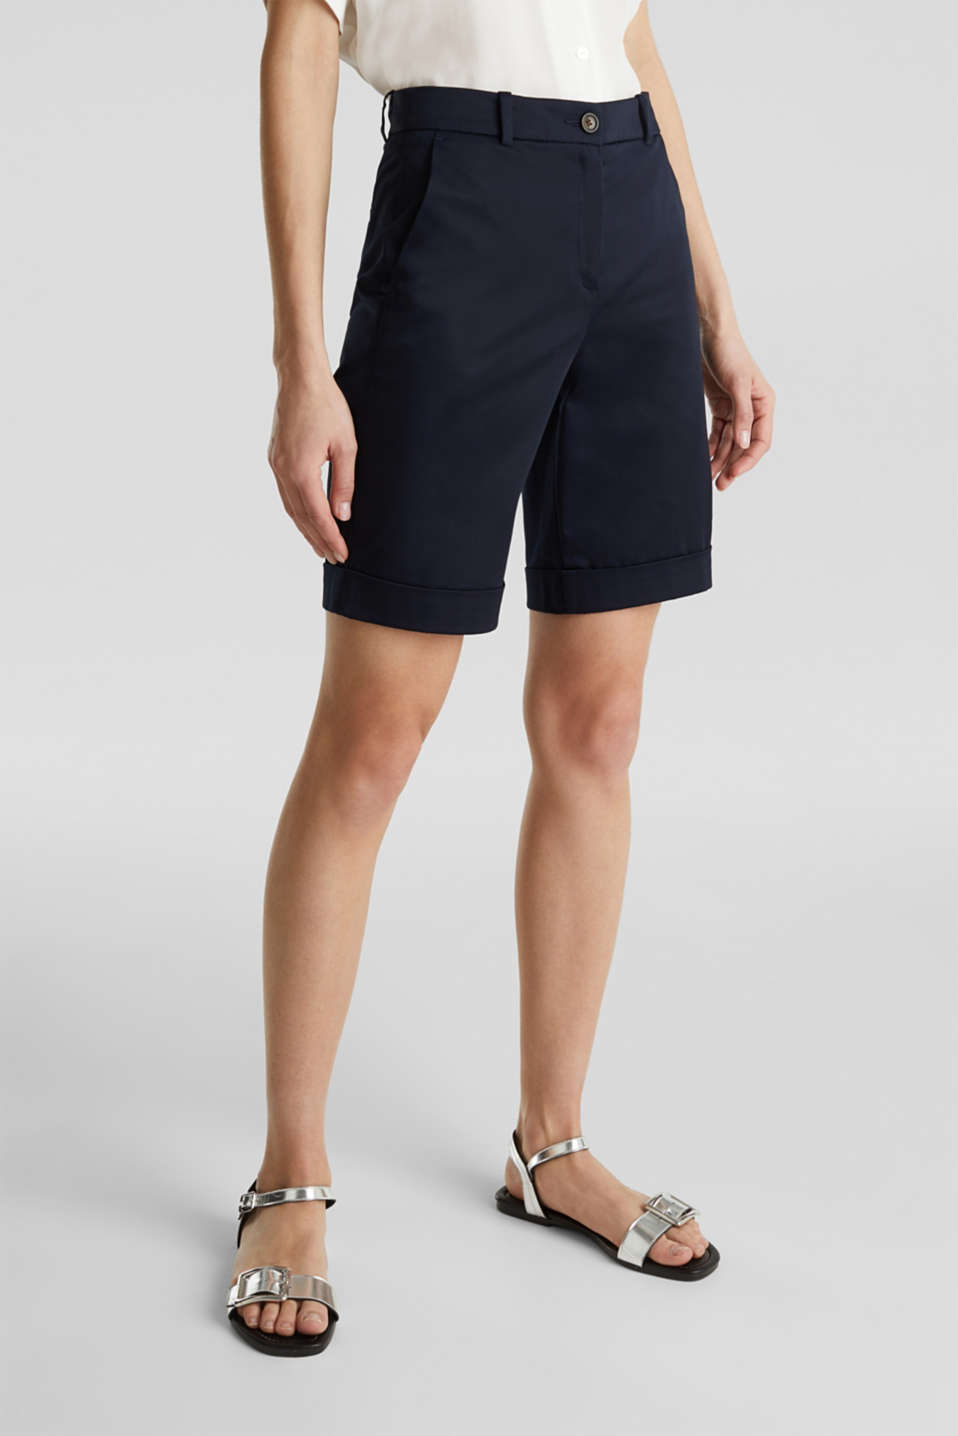 Stretchy satined Bermuda shorts, NAVY, detail image number 5